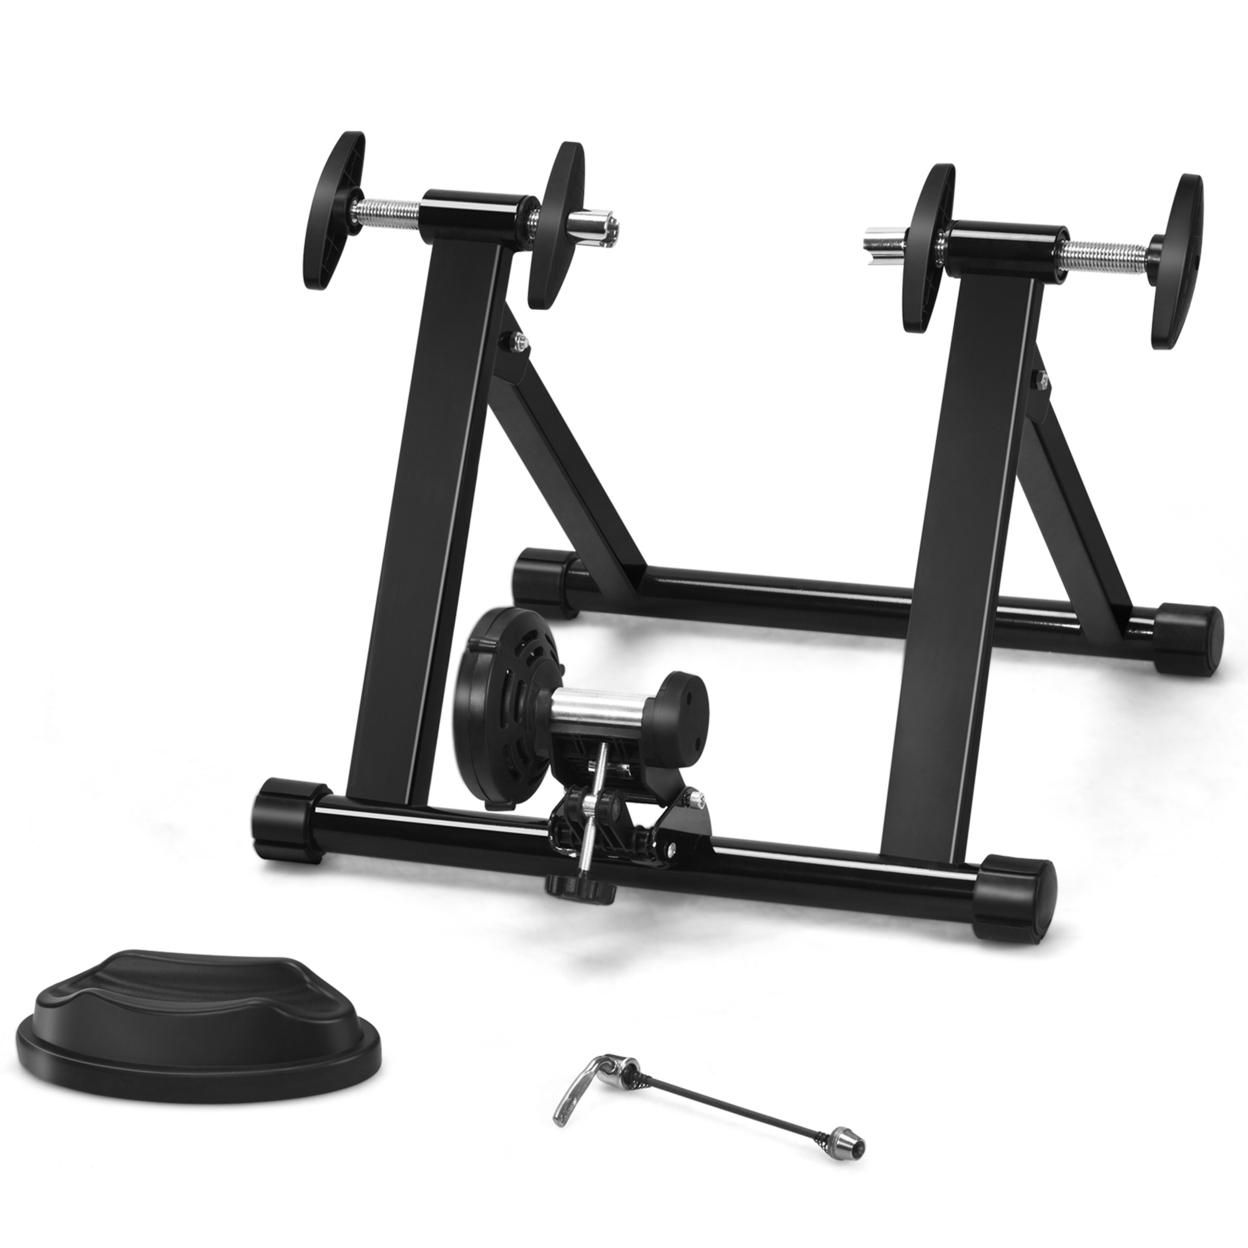 Gymax Foldable Bike Trainer Stand Cycling Exercise Stand w/ Dual-lock System